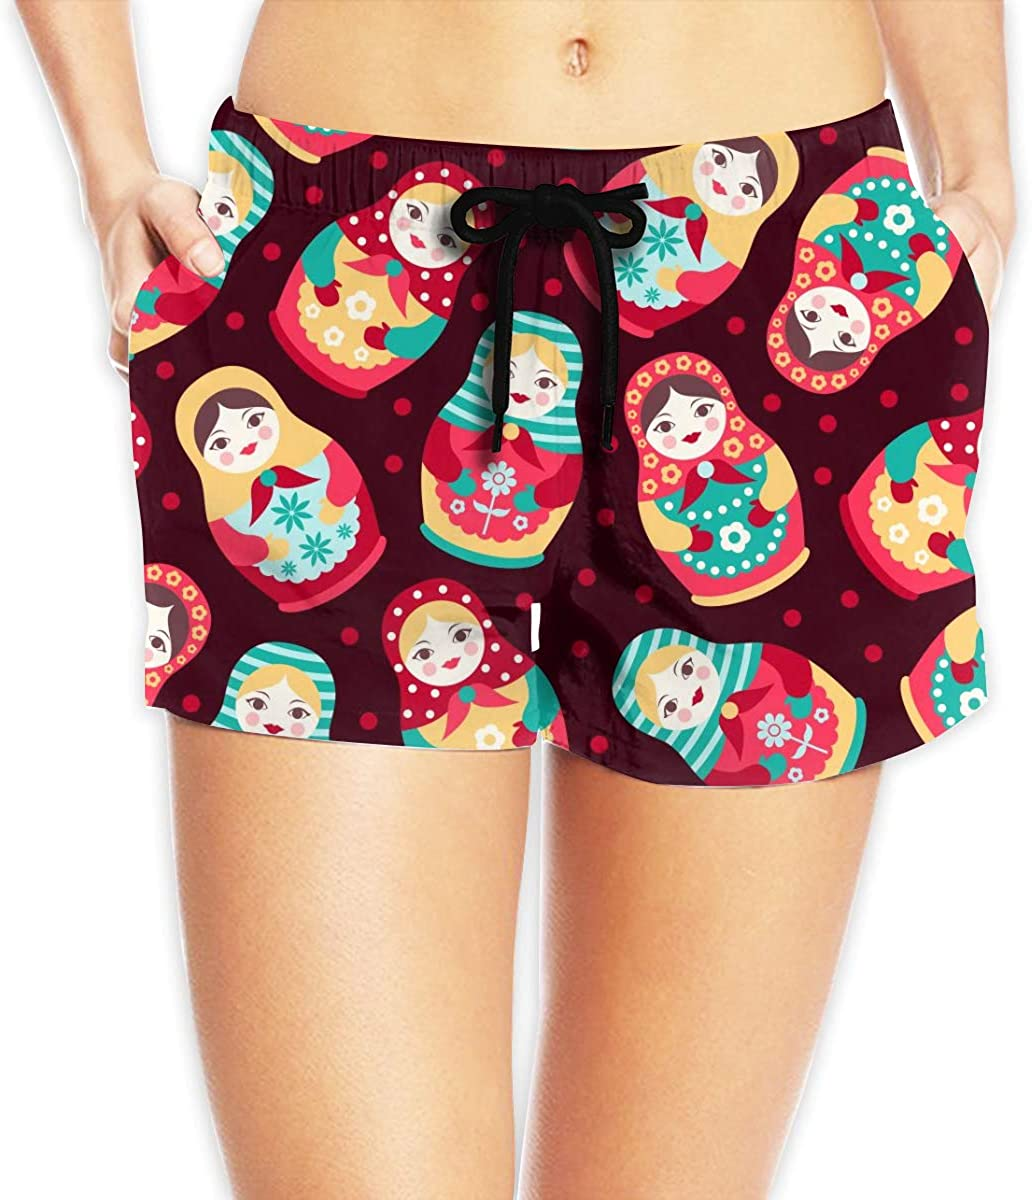 MOCSTONE Russian Dolls Womens Beach Shorts Board Shorts with Pocket Swimming Trunks